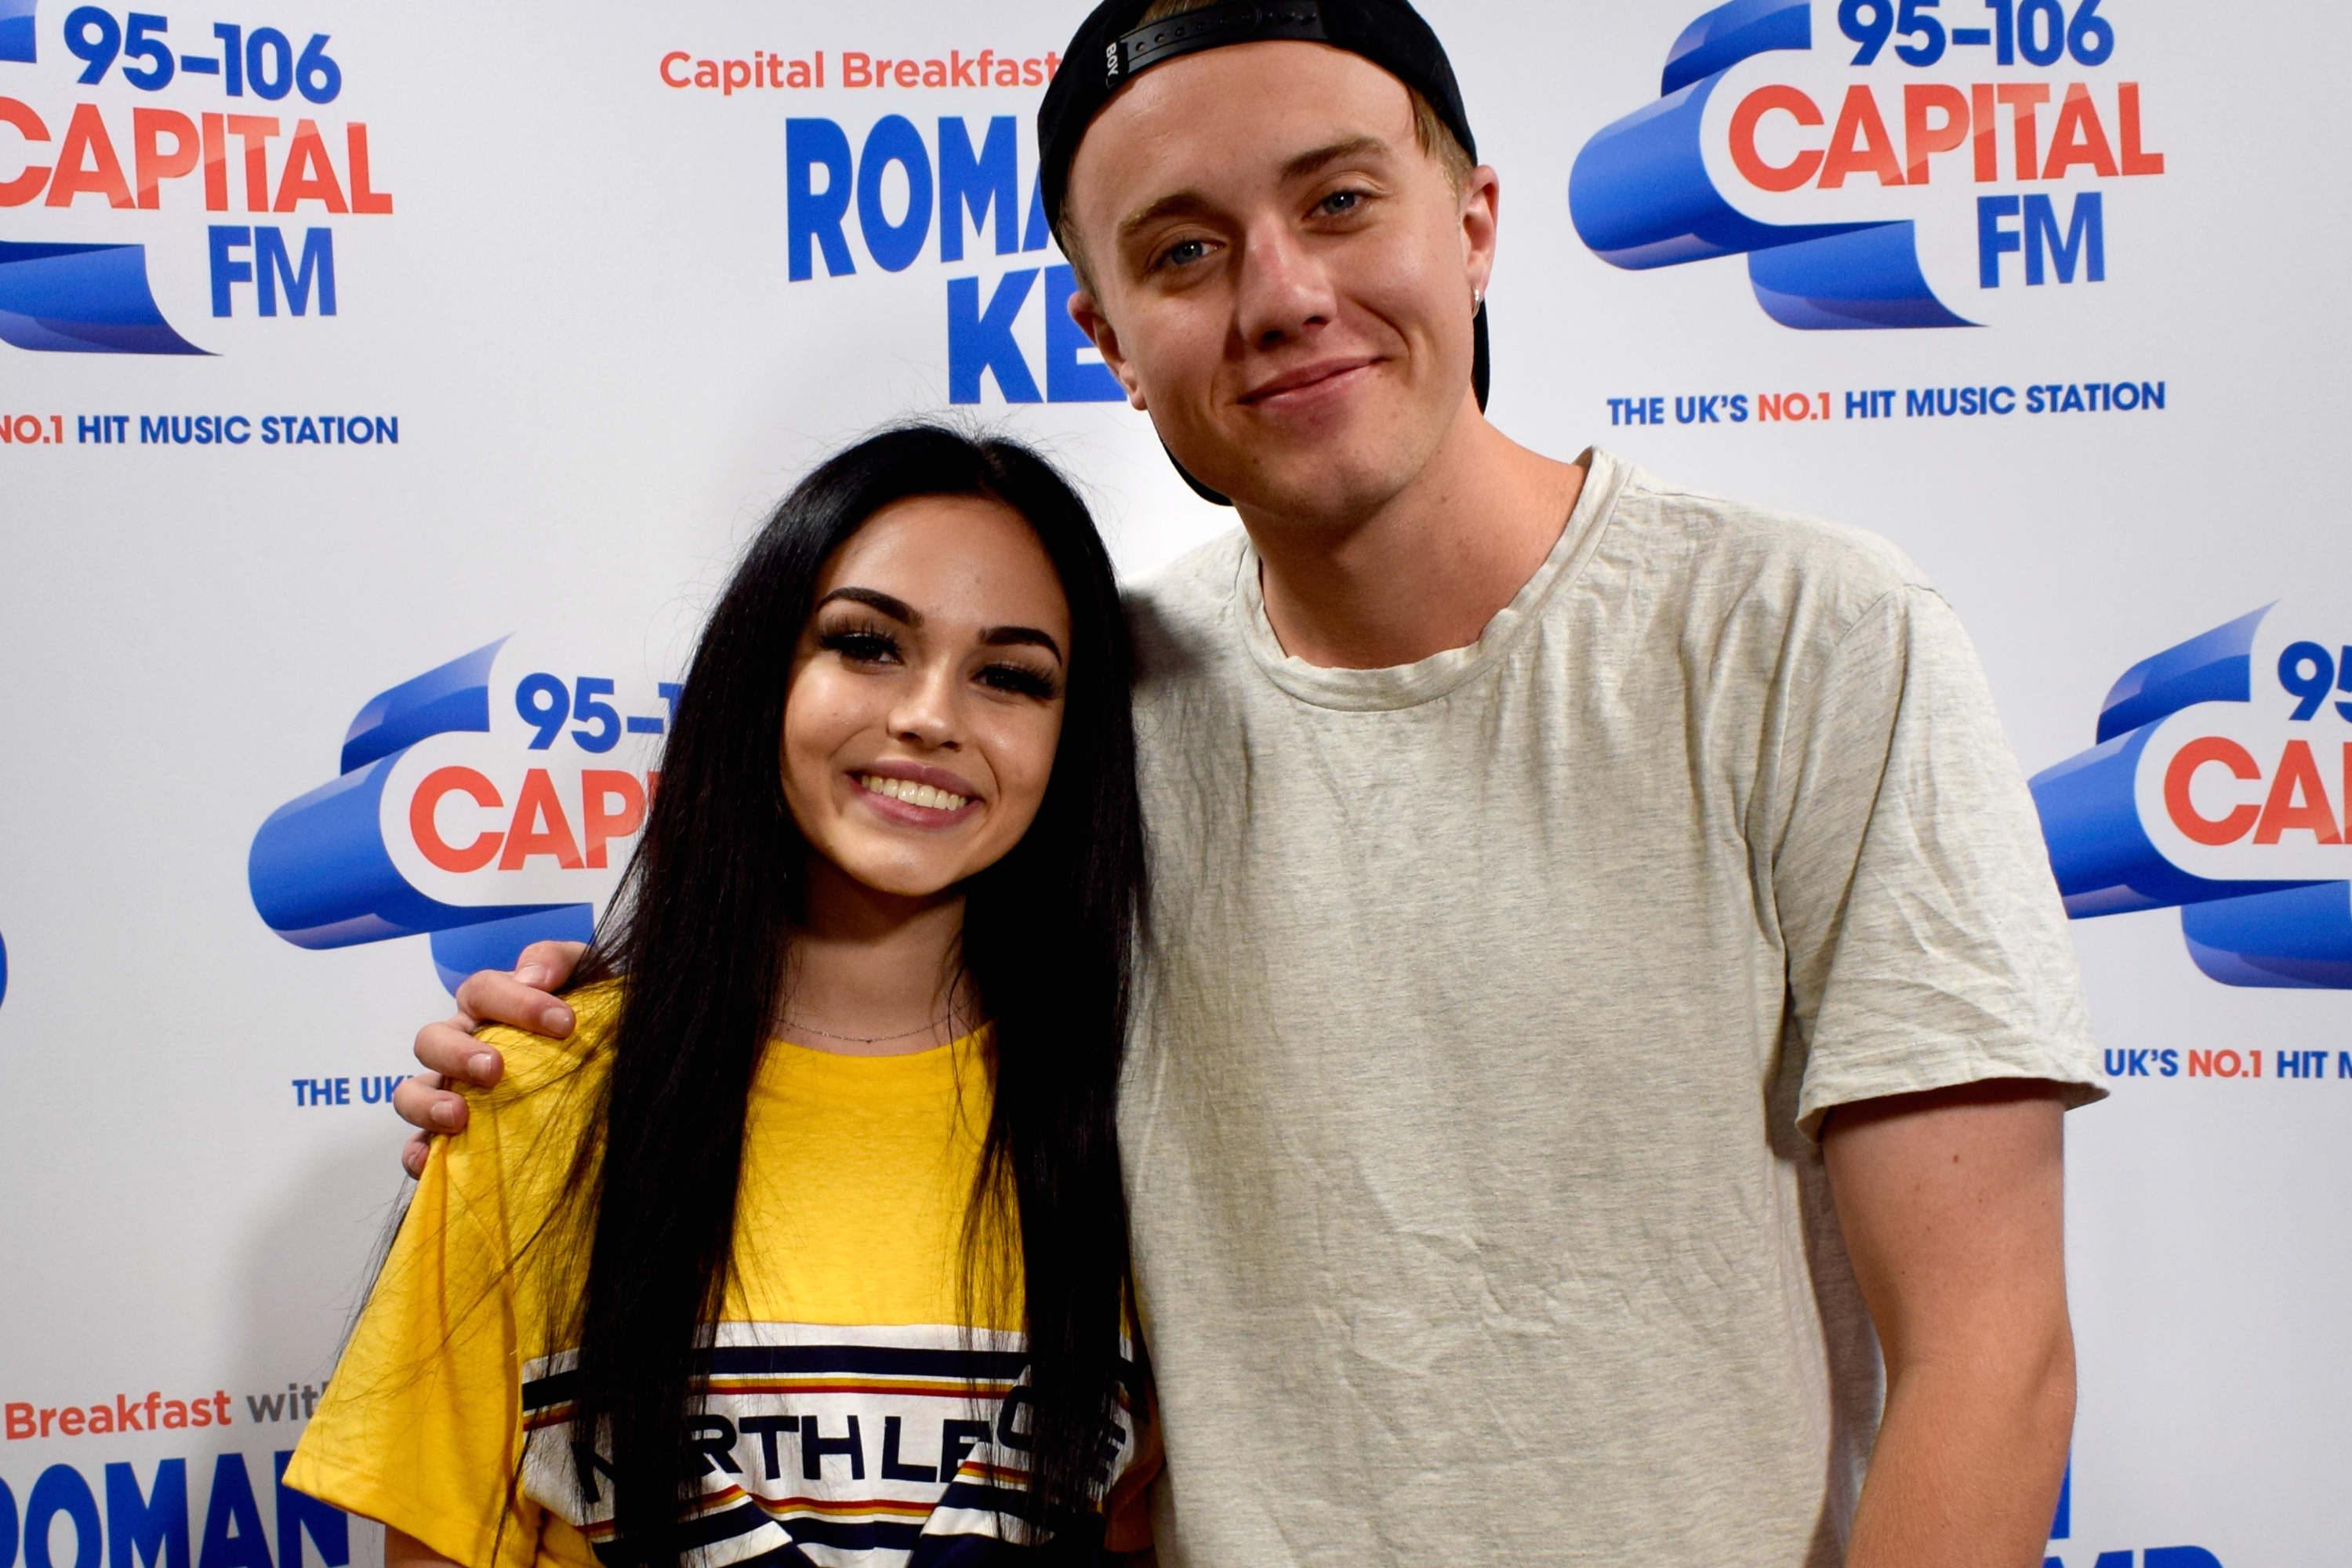 Maggie Lindemann with Roman Kemp